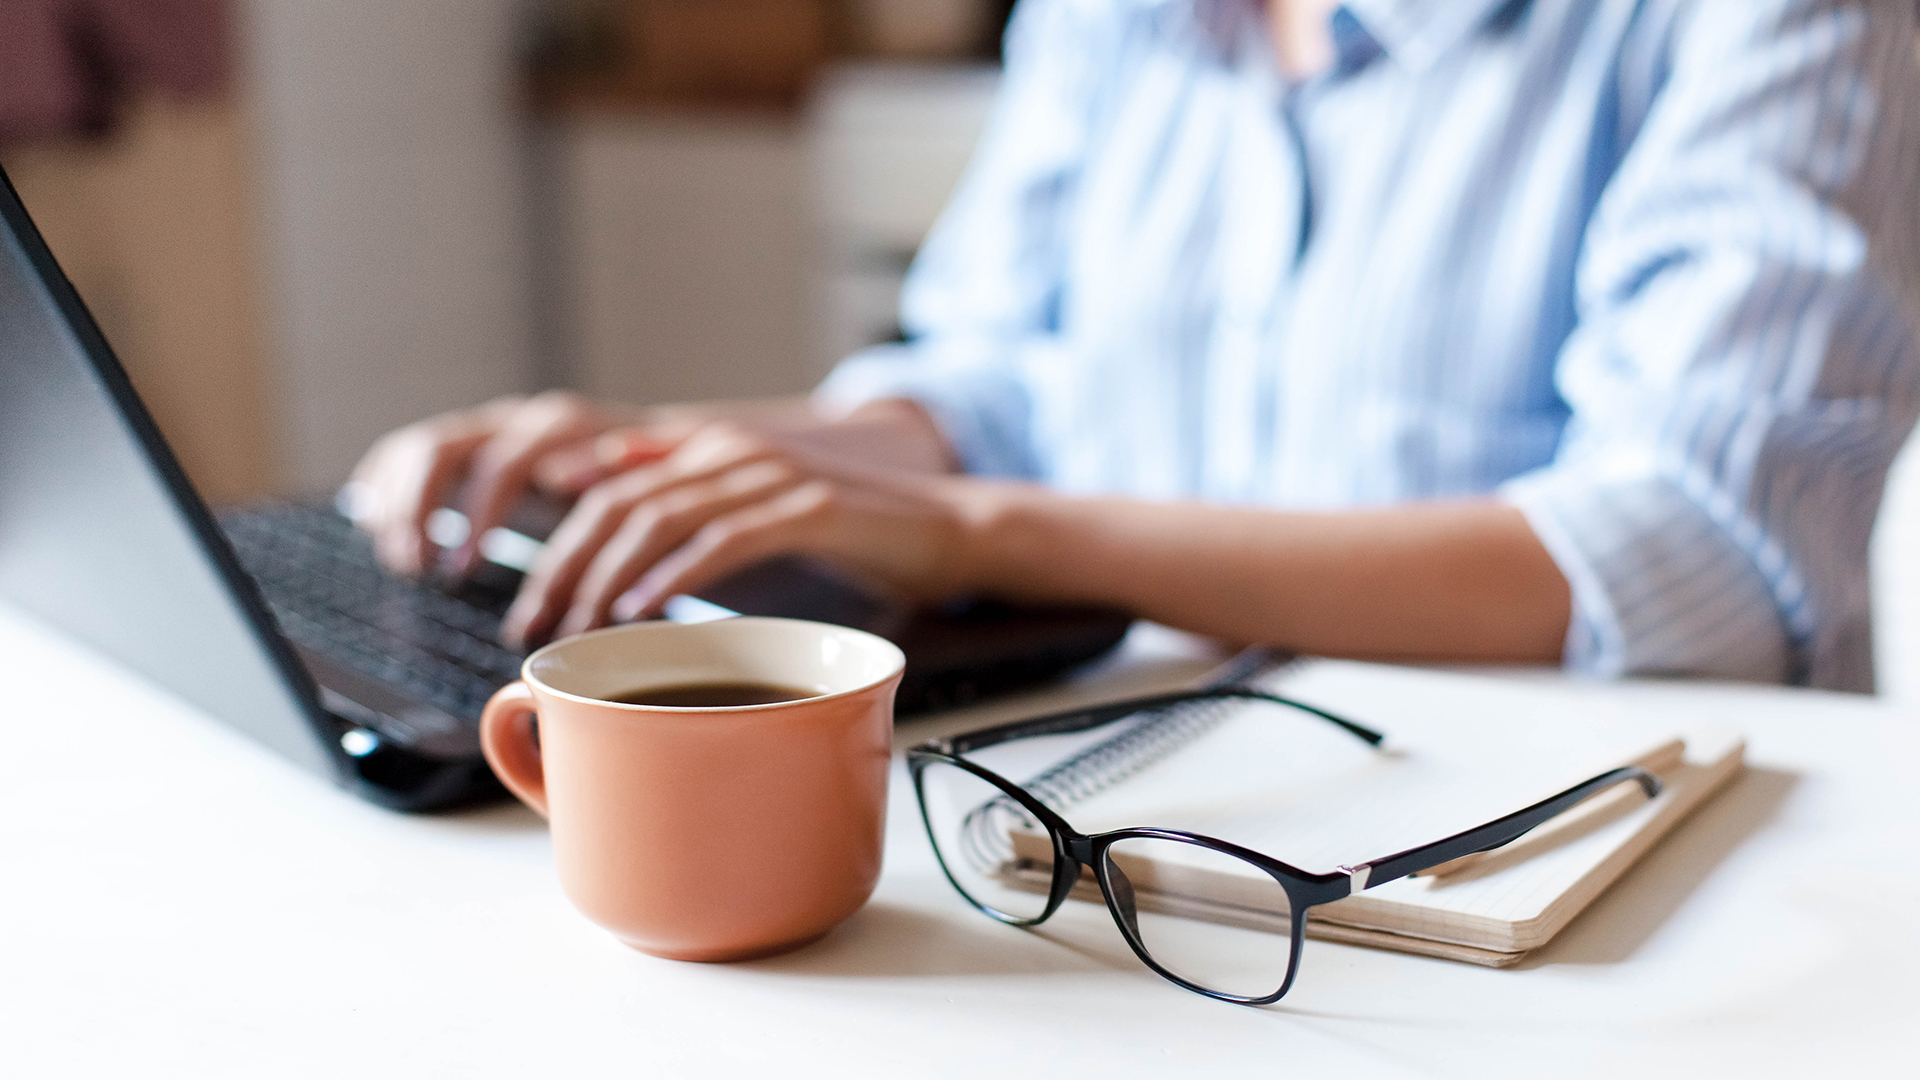 laptop, coffee cup and glasses on top of journal